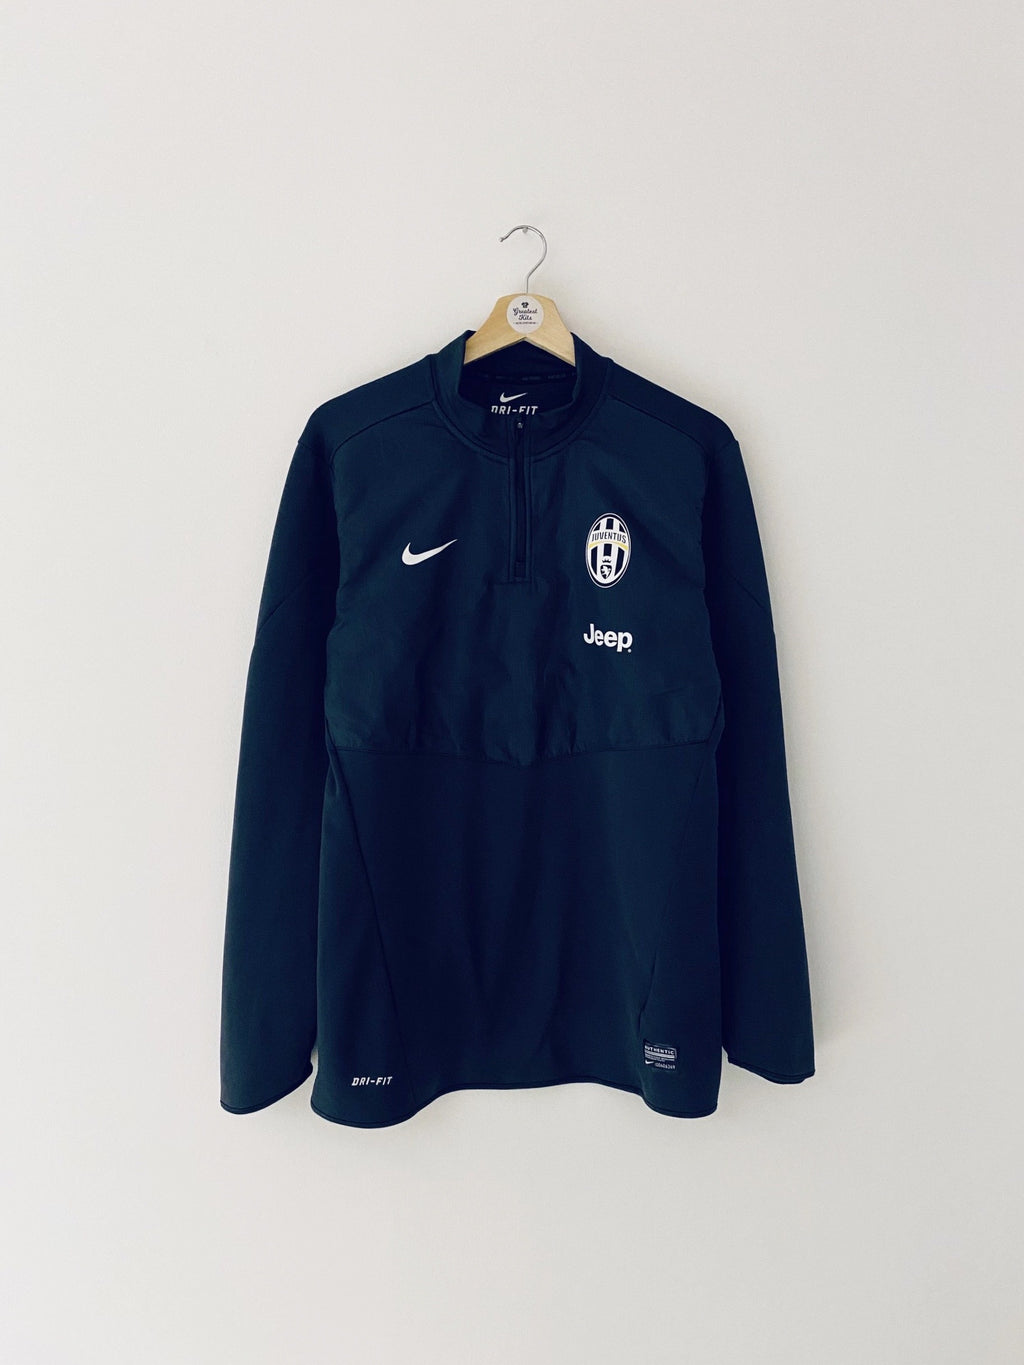 2013/14 Juventus 1/4 Zip Training Top (M) 9/10